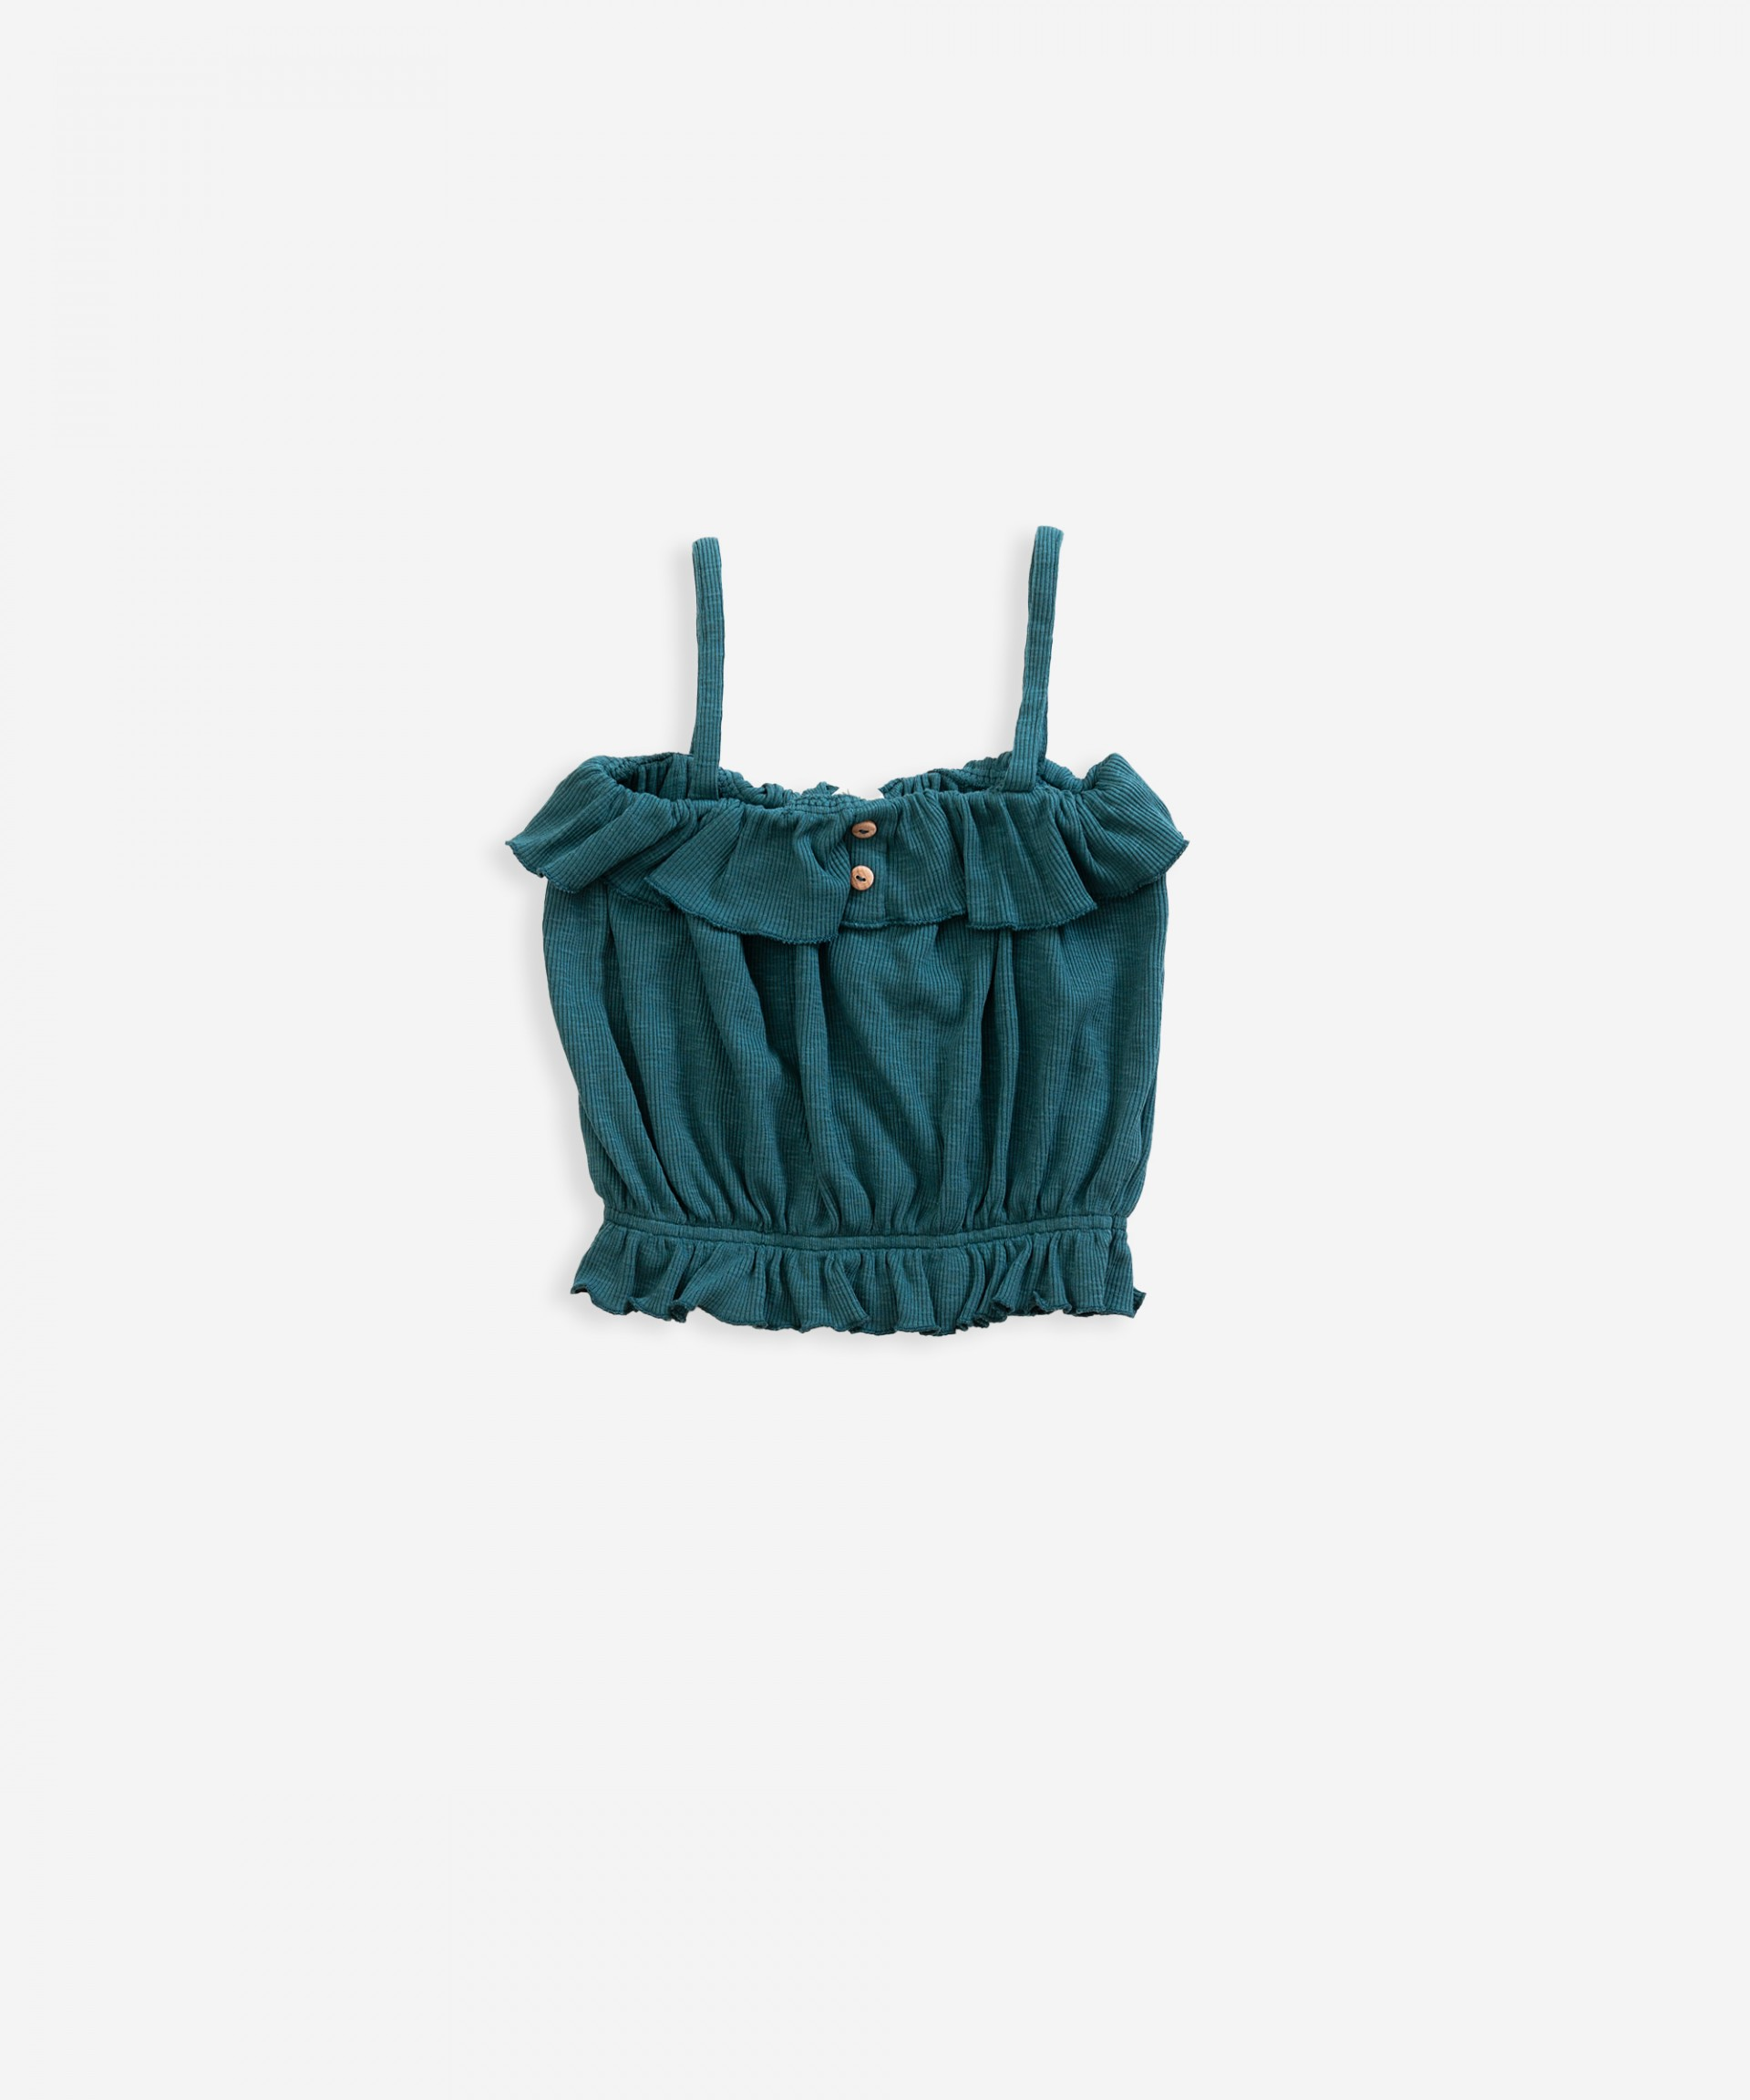 Top with frills | Weaving